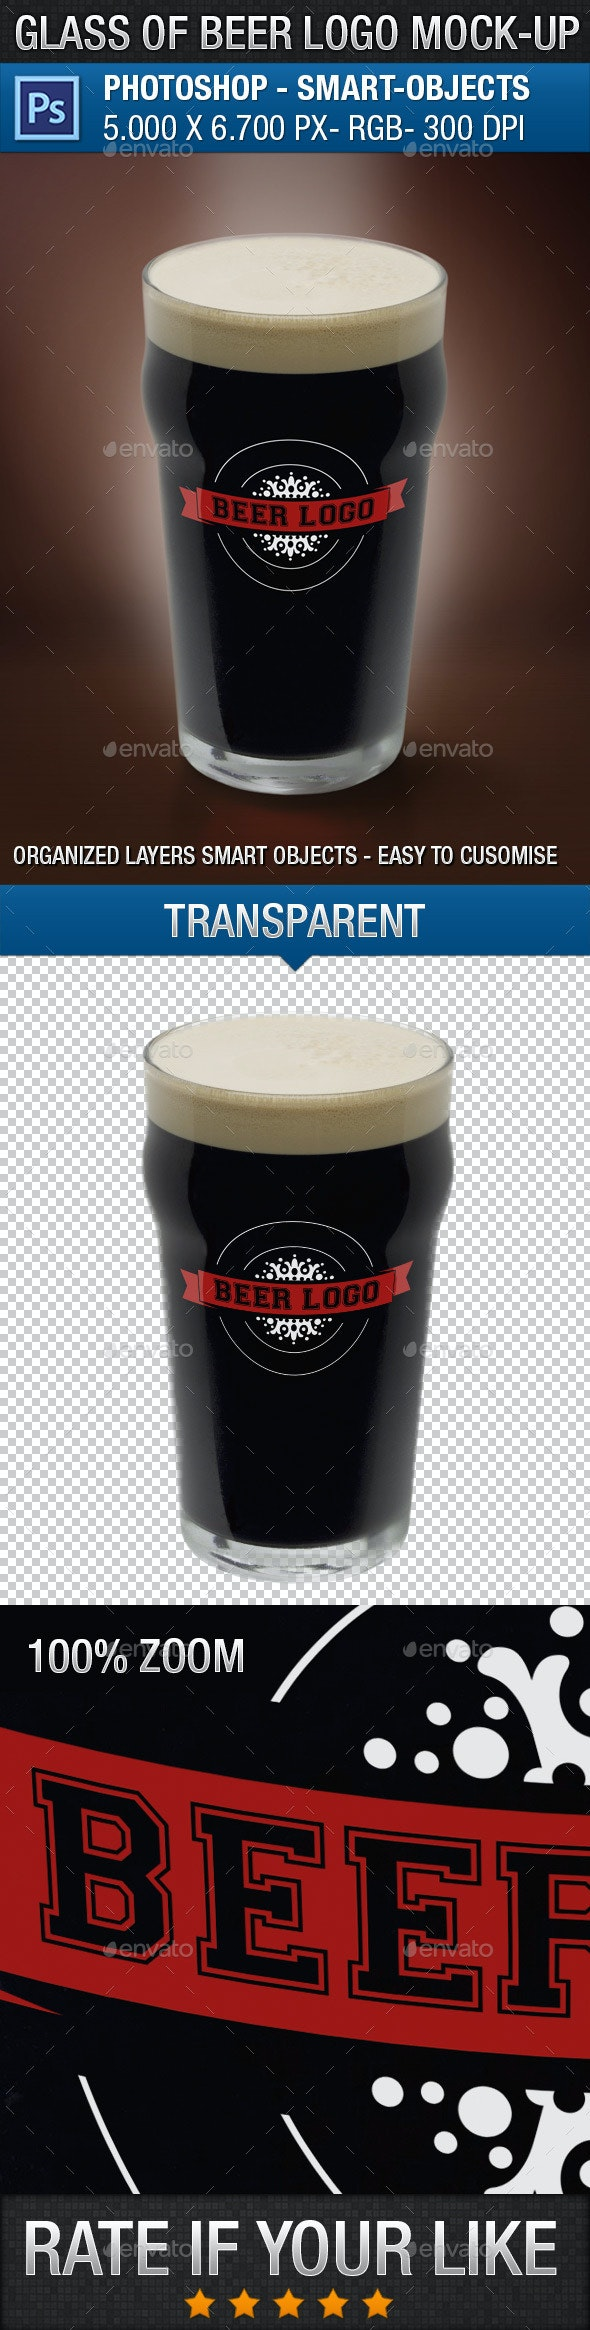 Glass of Beer Logo Mock-Up - Food and Drink Packaging